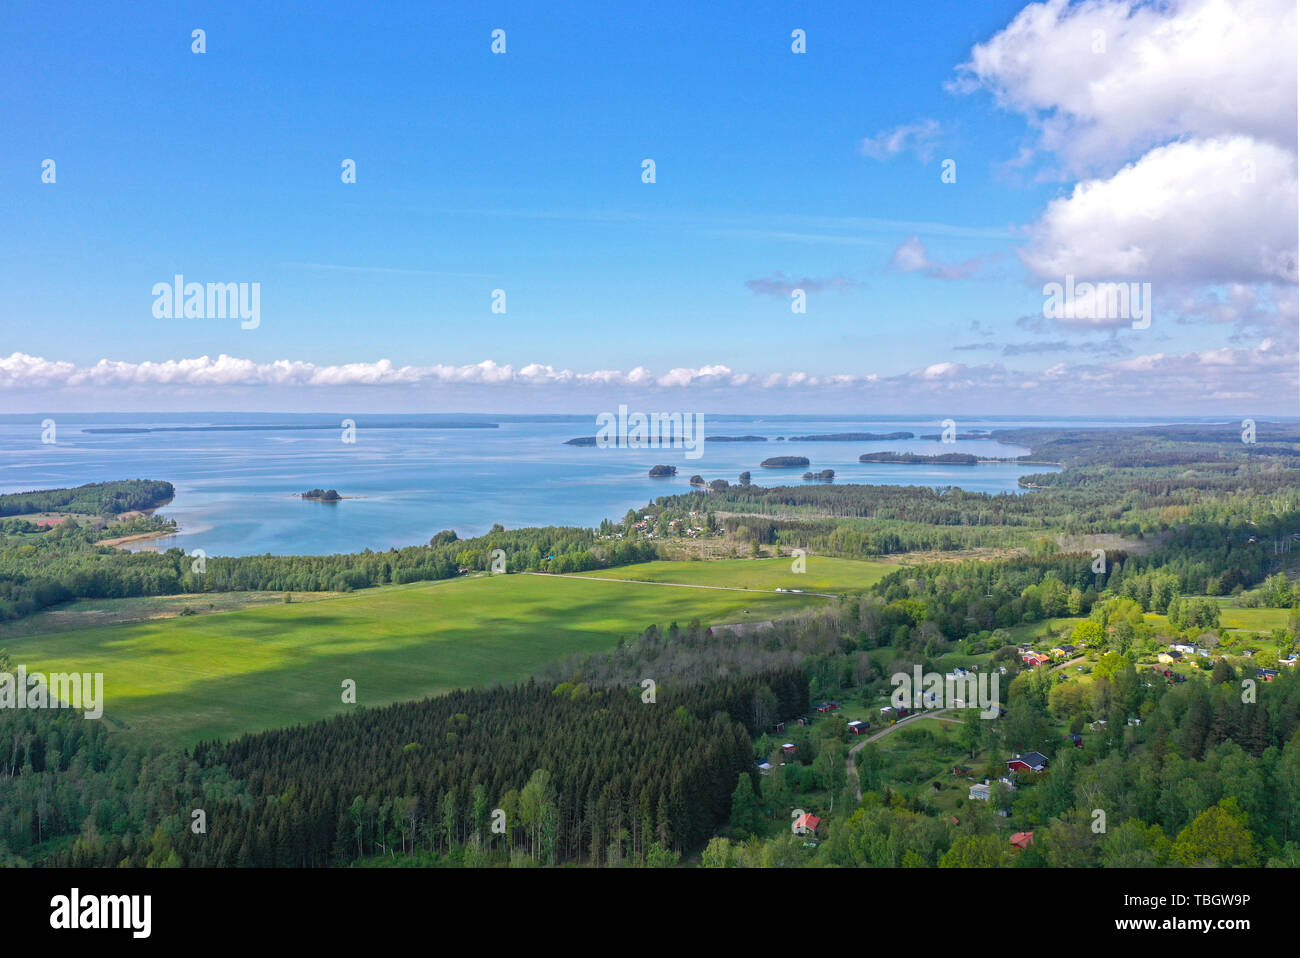 View of lake Vättern. - Stock Image